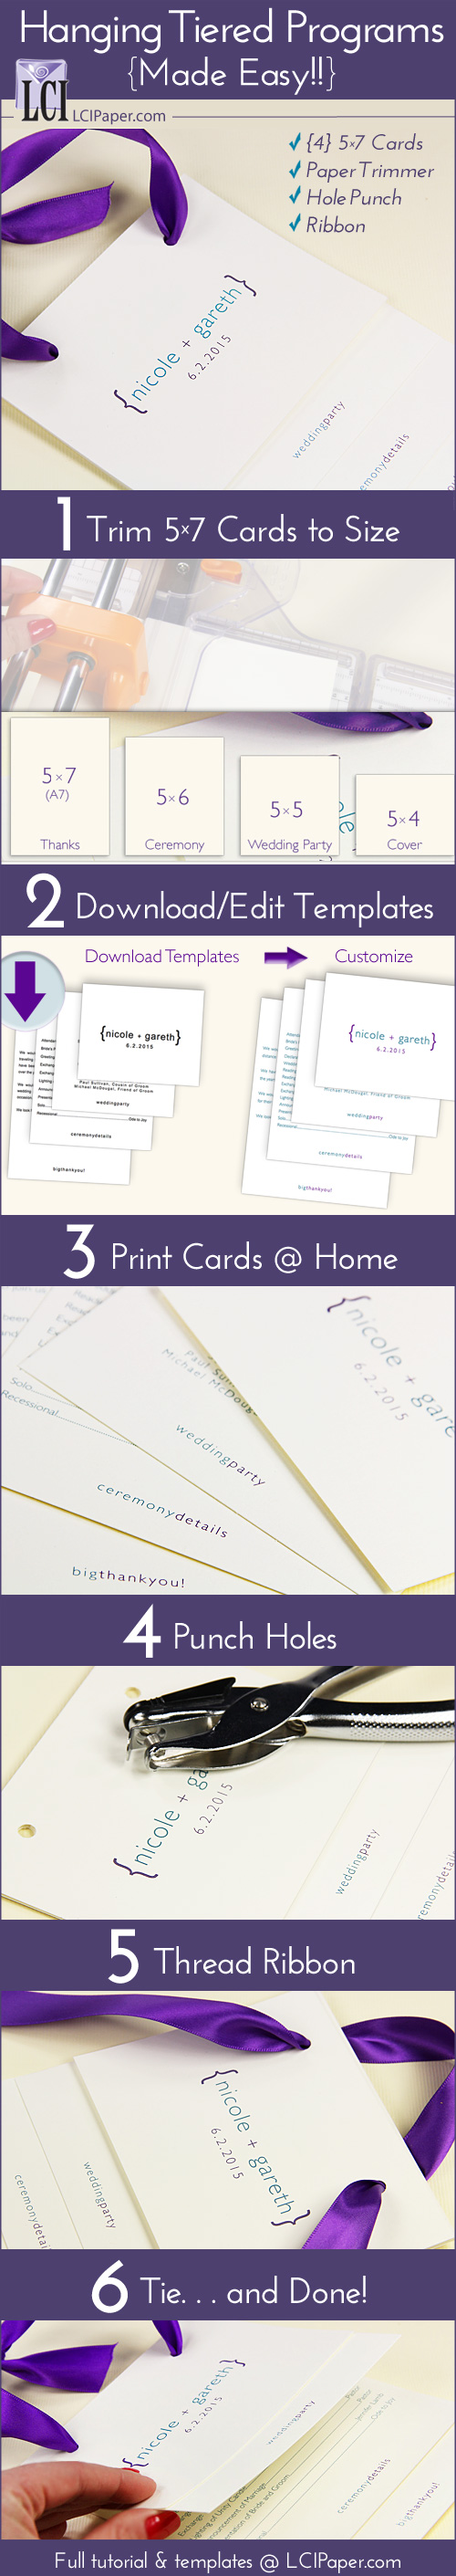 free templates for wedding response cards%0A     best DIY Wedding Inspiration images on Pinterest   Diy wedding  inspiration  Microsoft word and   th birthday